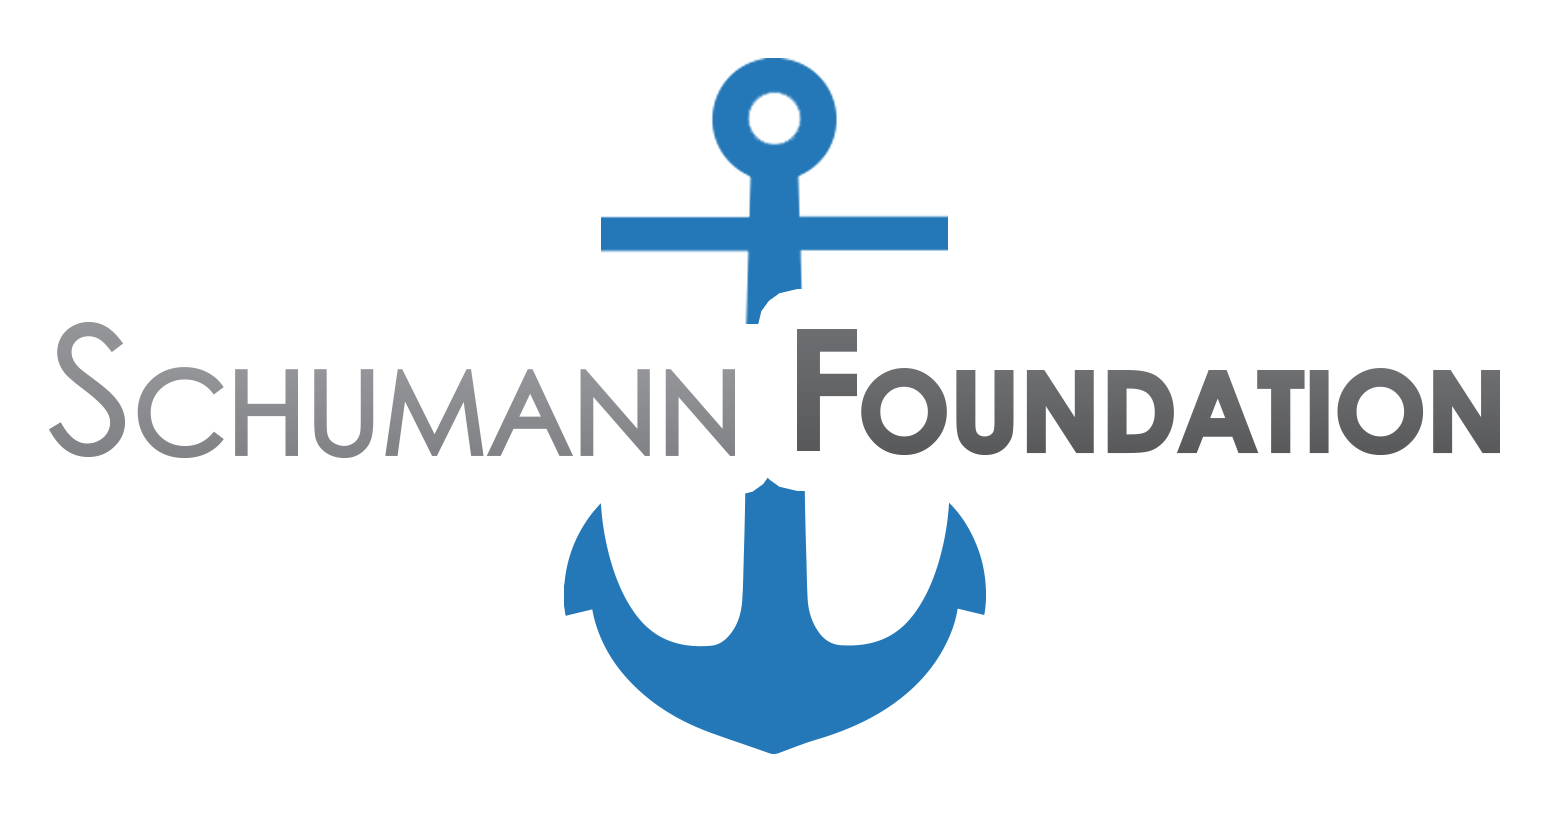 Schumann Foundation